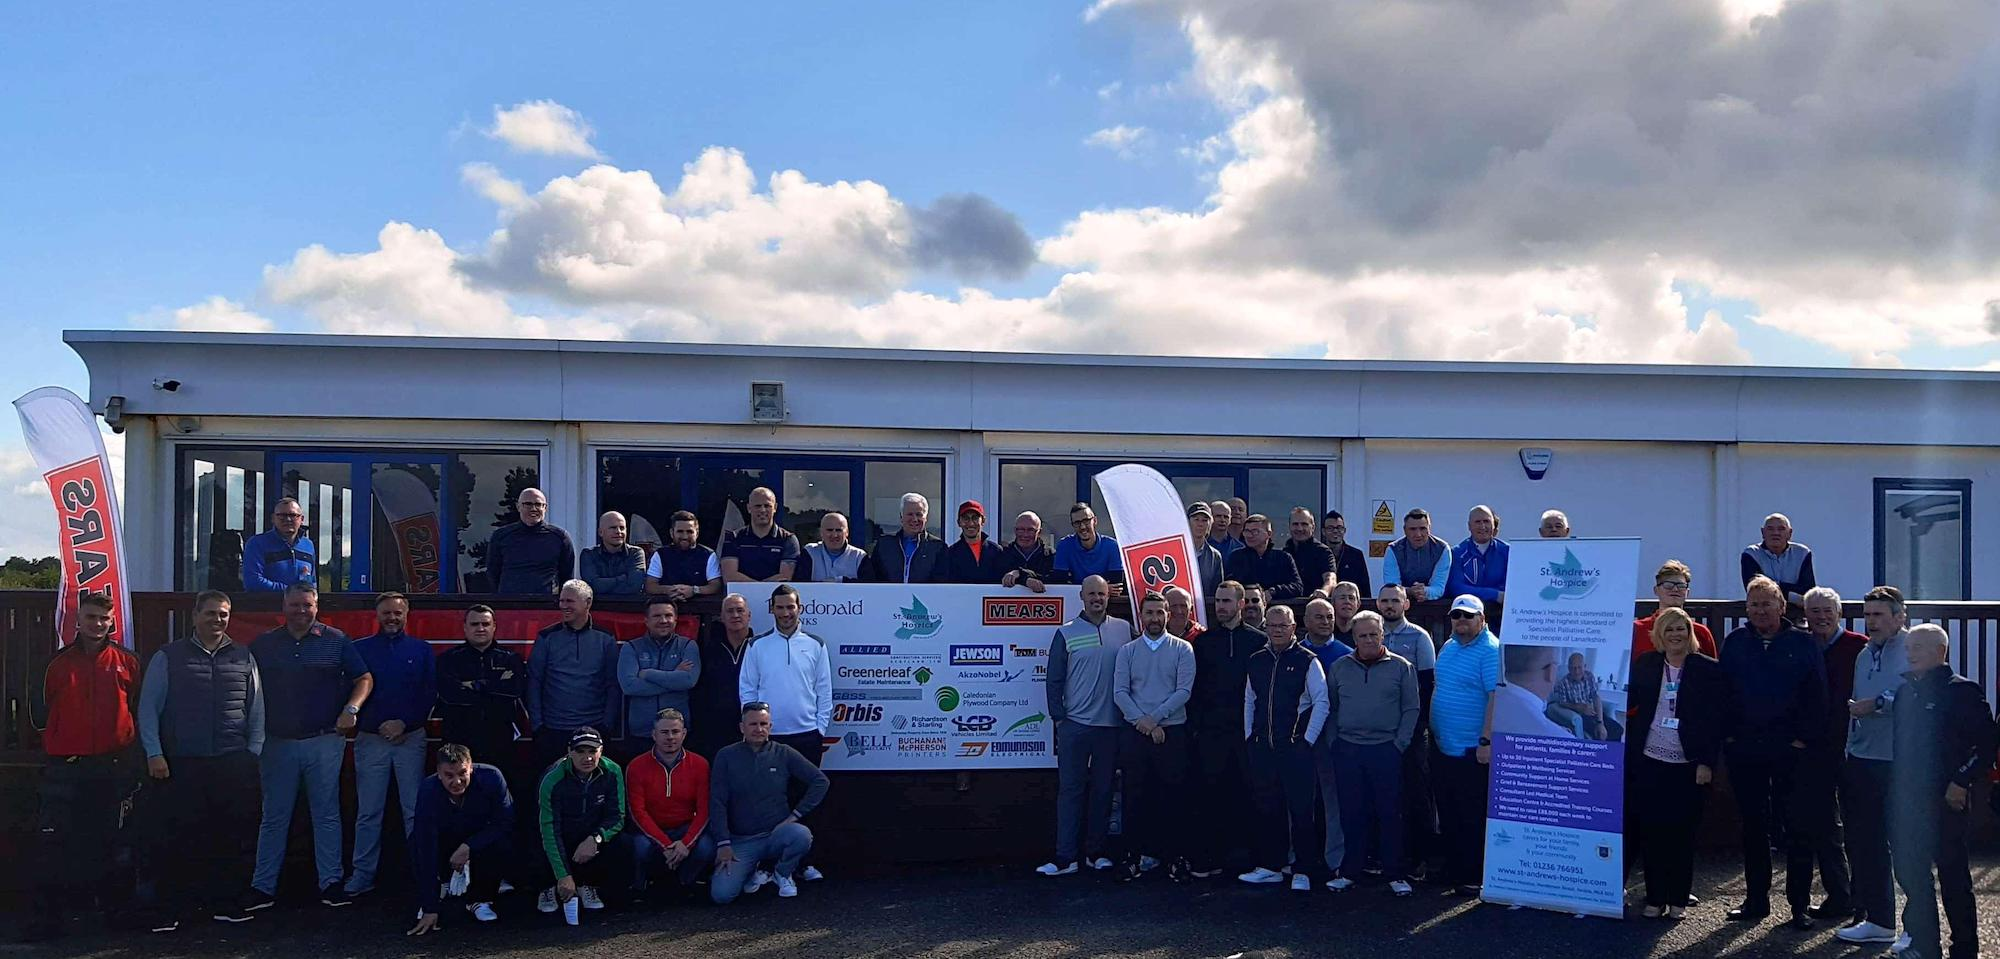 Mears Group, who work in partnership with North Lanarkshire Council, have raised £11,500 at this year's Mears Charity Golf Day held at Dundonald Links for St Andrew's Hospice.